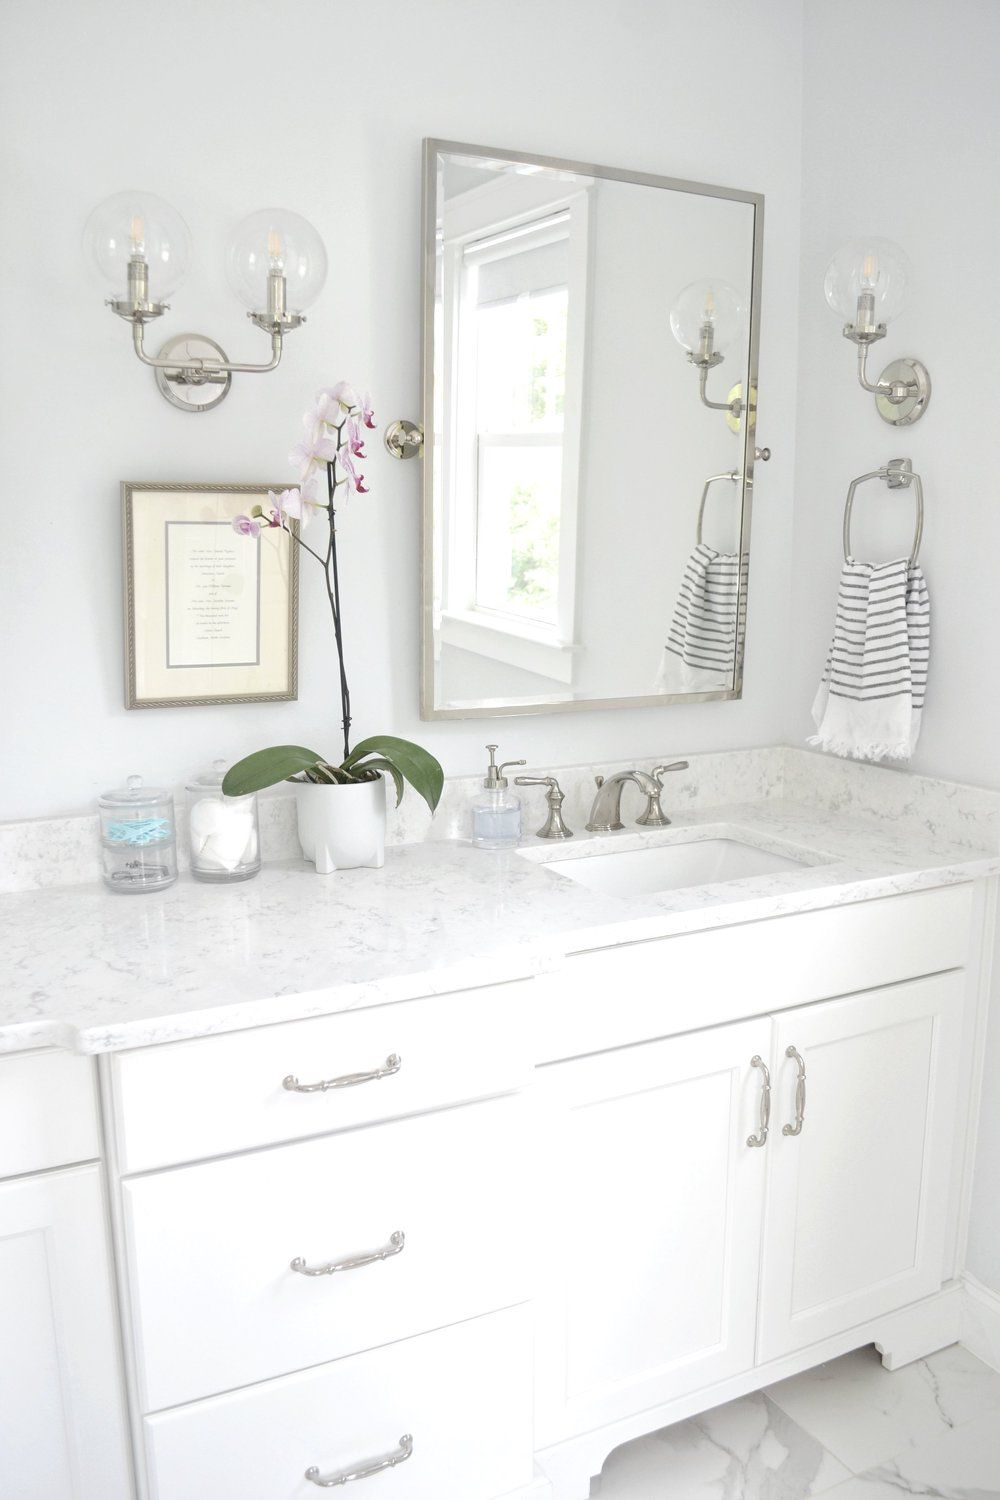 Sherwin Williams Extra White & Ice Cube In My Home - Chrissy Marie Blog